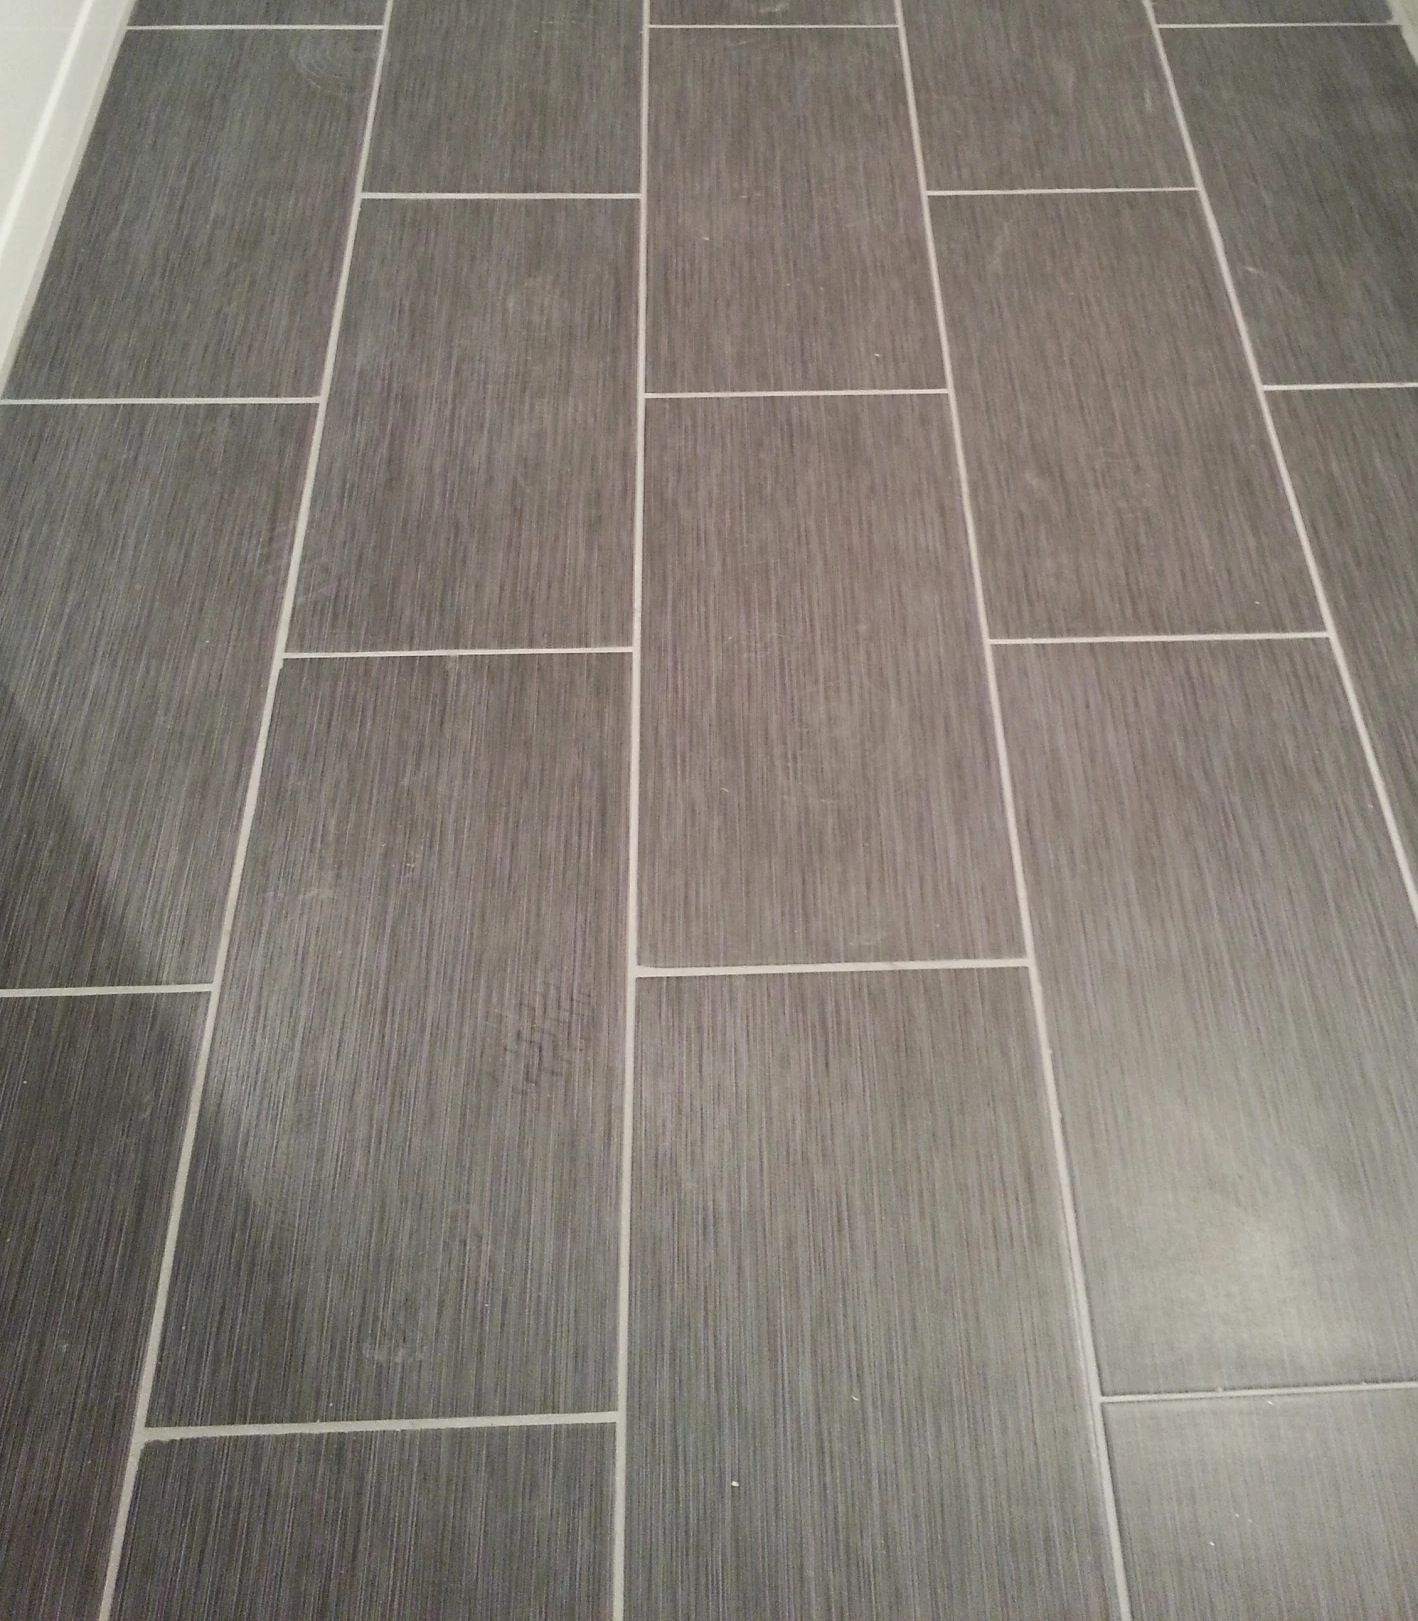 Home Depot Metro Gris 12x24 Tile In My Bathroom Bathroom Design